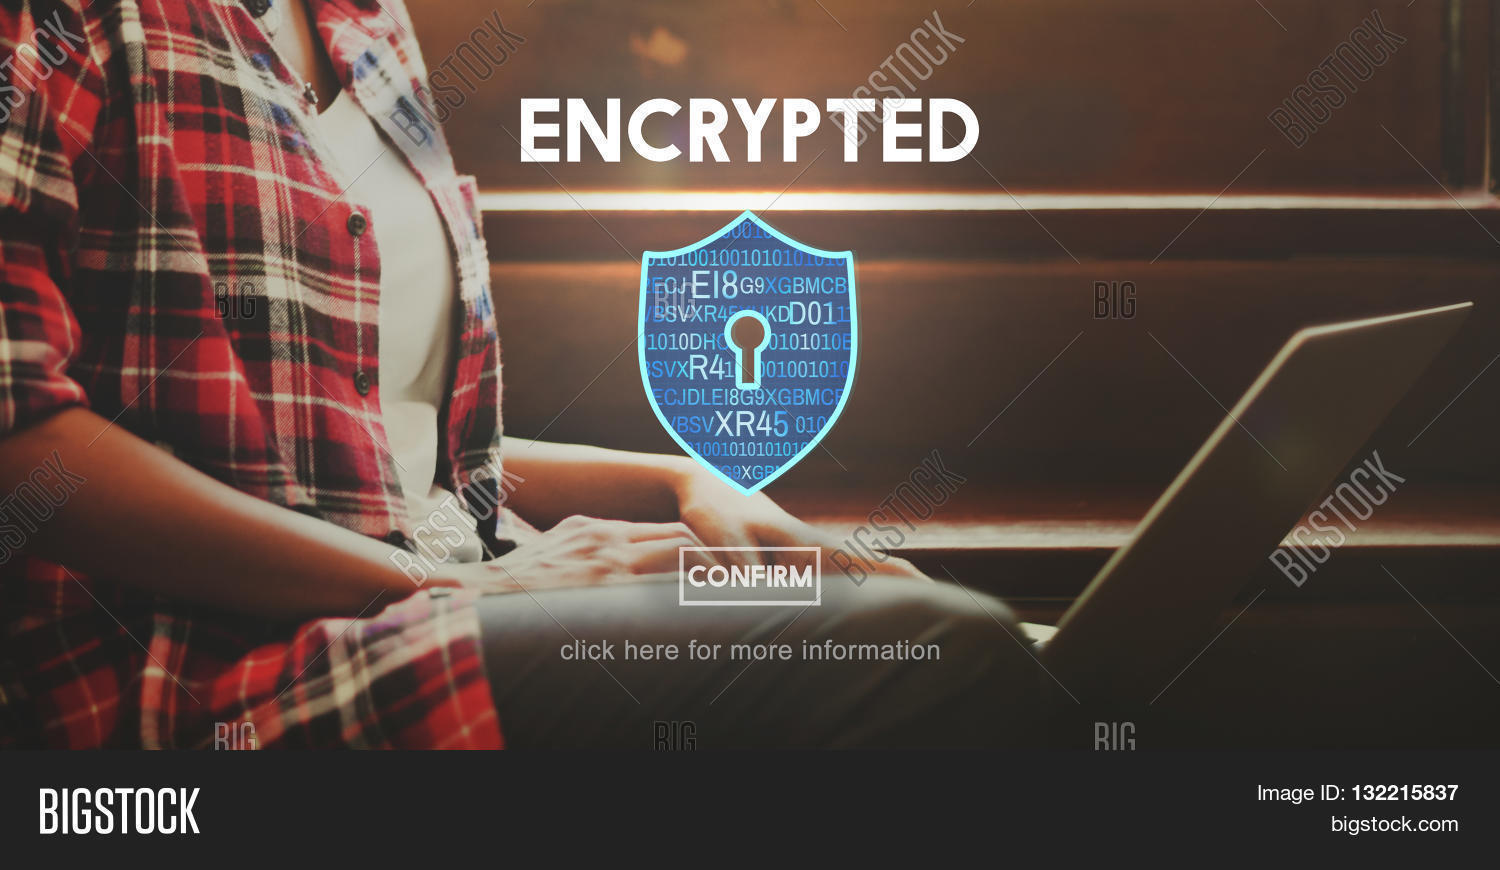 how to download encrypted photos